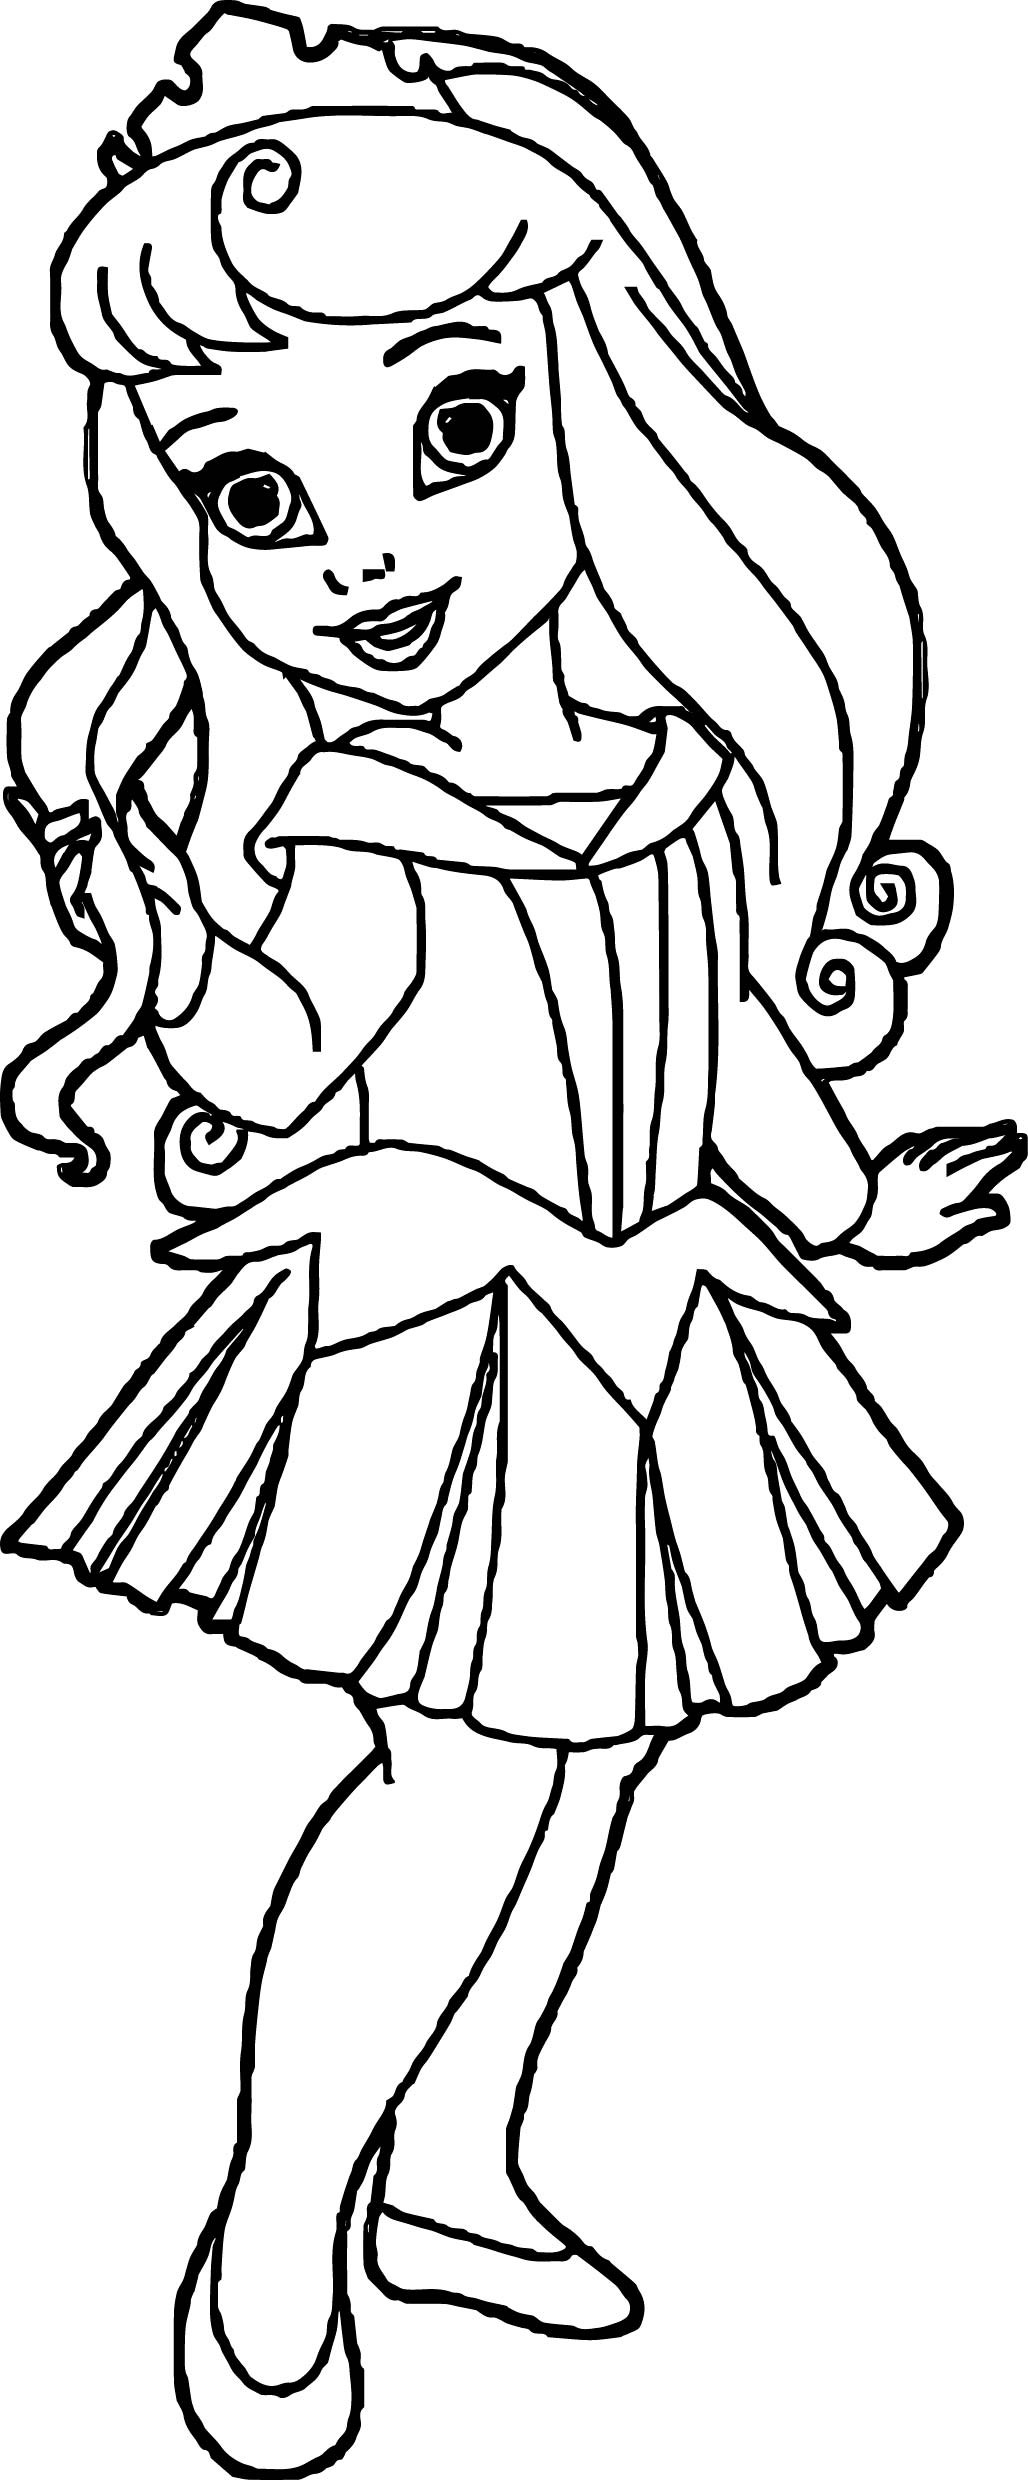 Kids Coloring Picture  Small Kid Princess Coloring Page